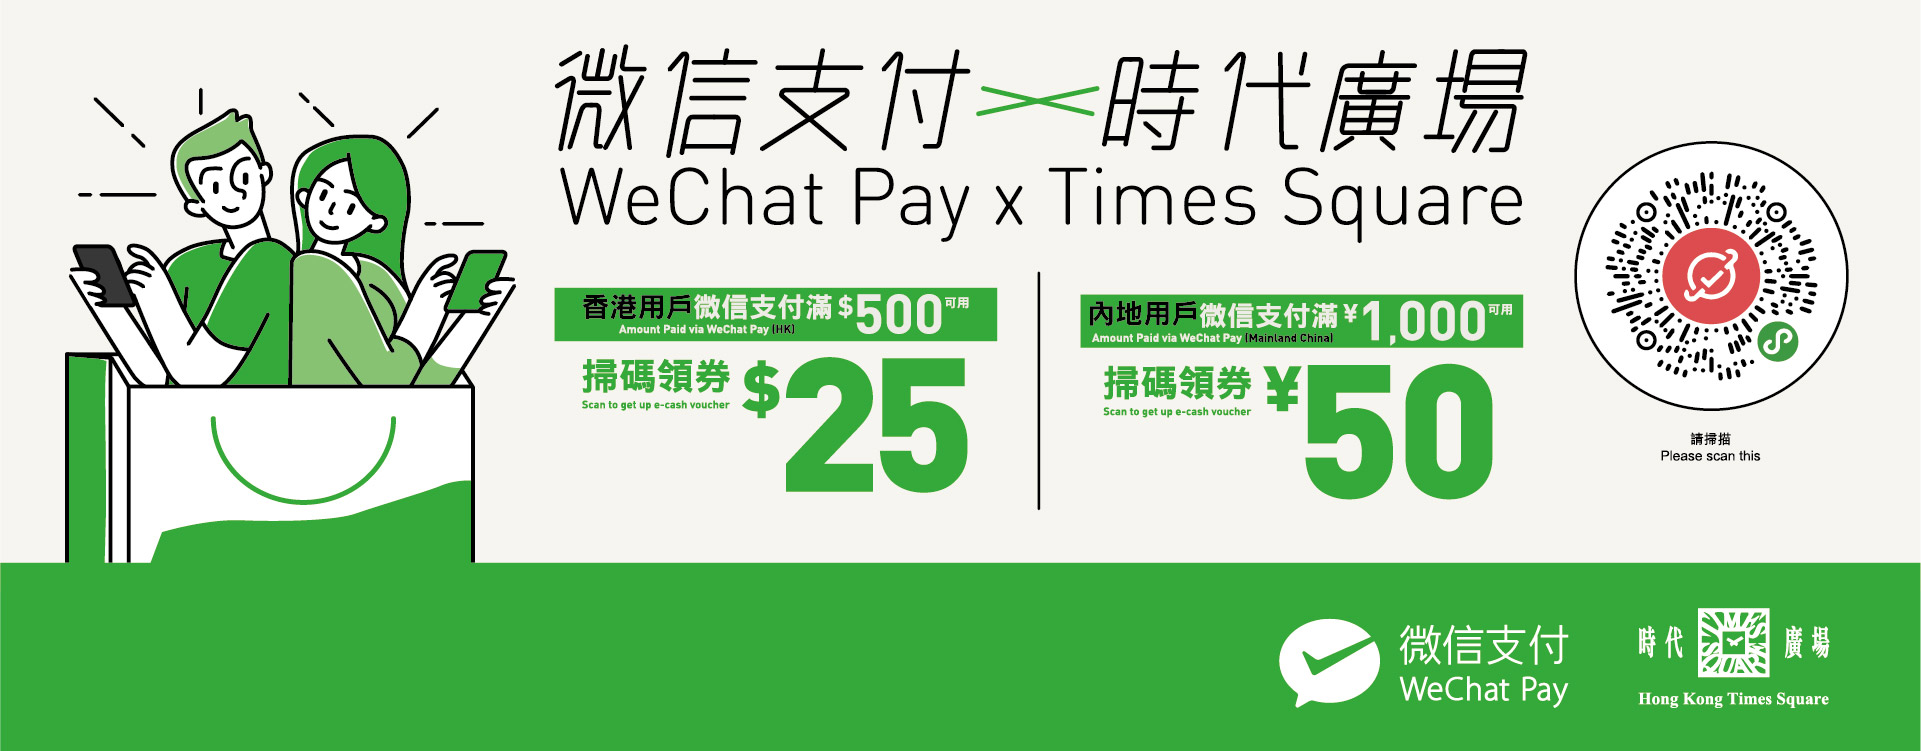 WeChat Pay x Times Square